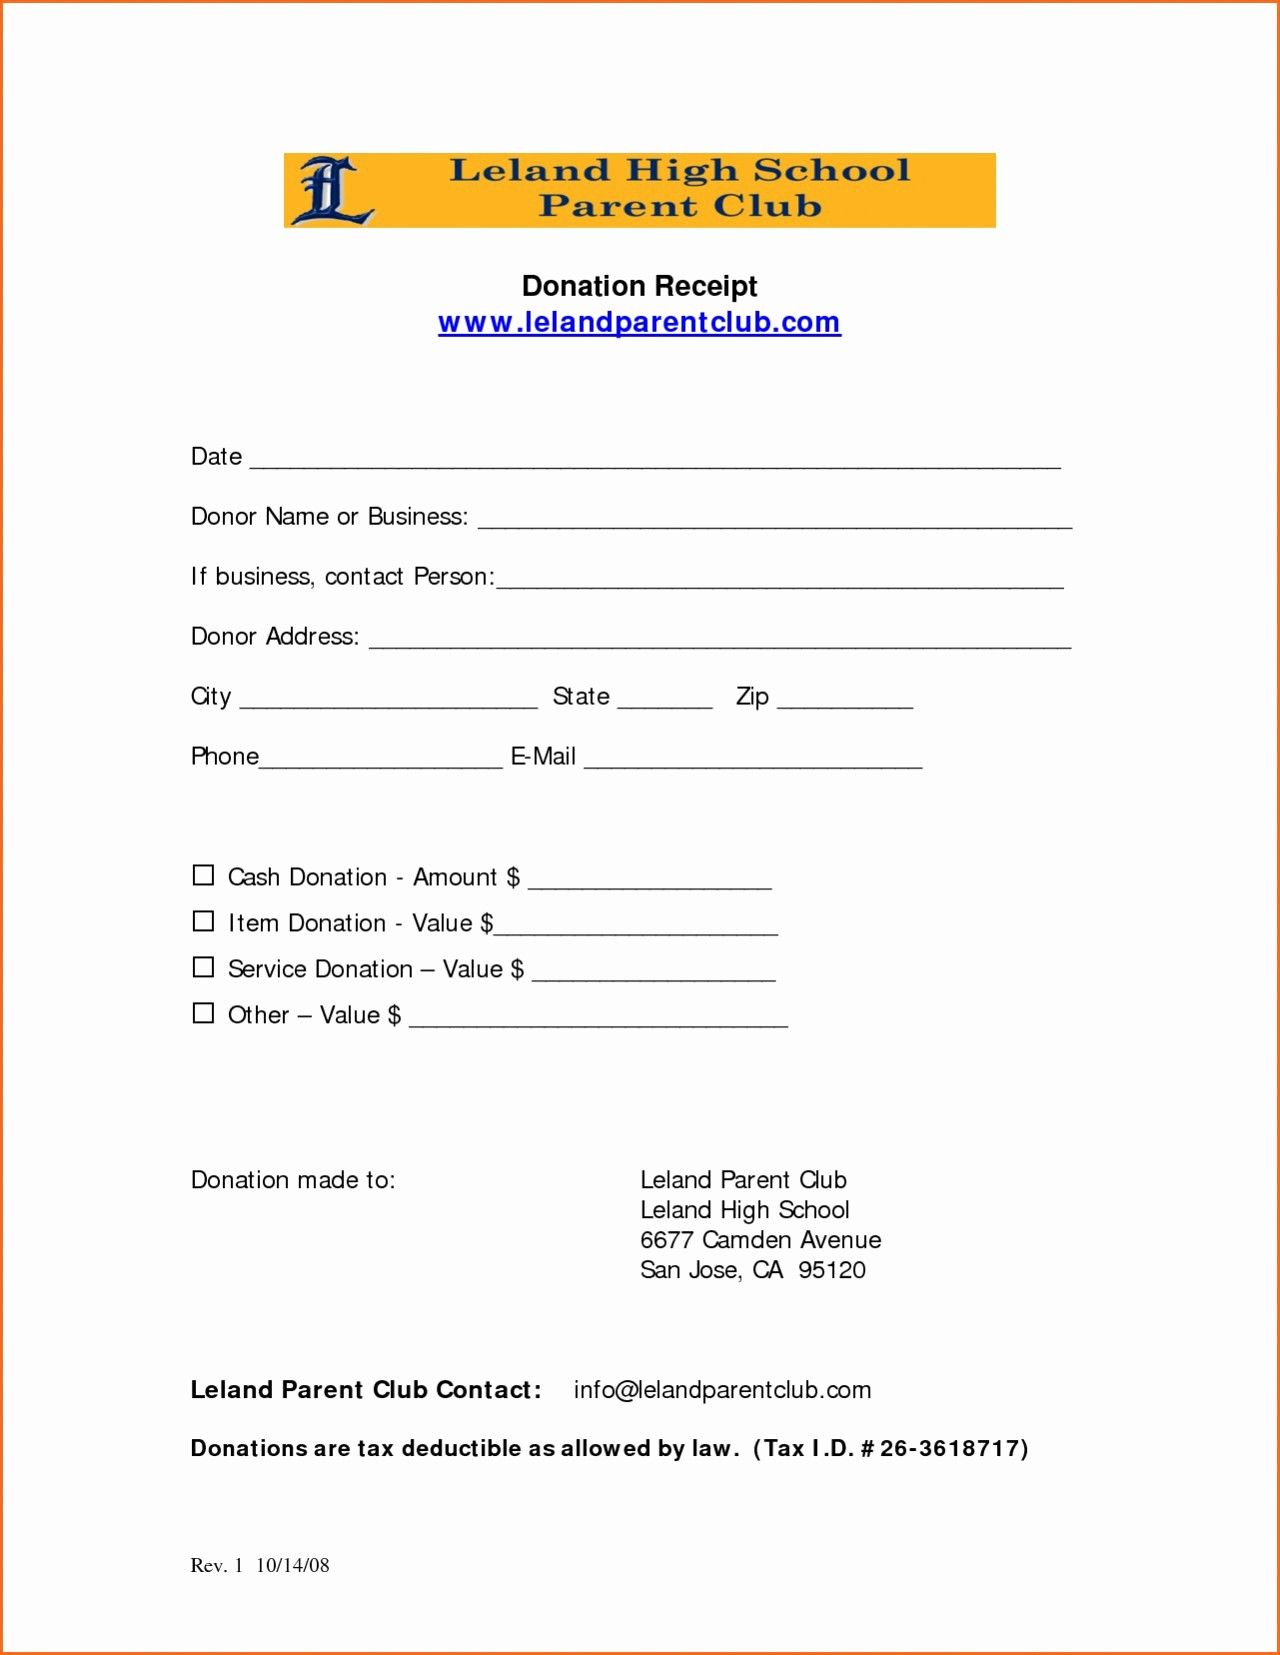 Donation form for Tax Purposes Awesome Donation Tax Receipt Template Fresh Church Donation Letter